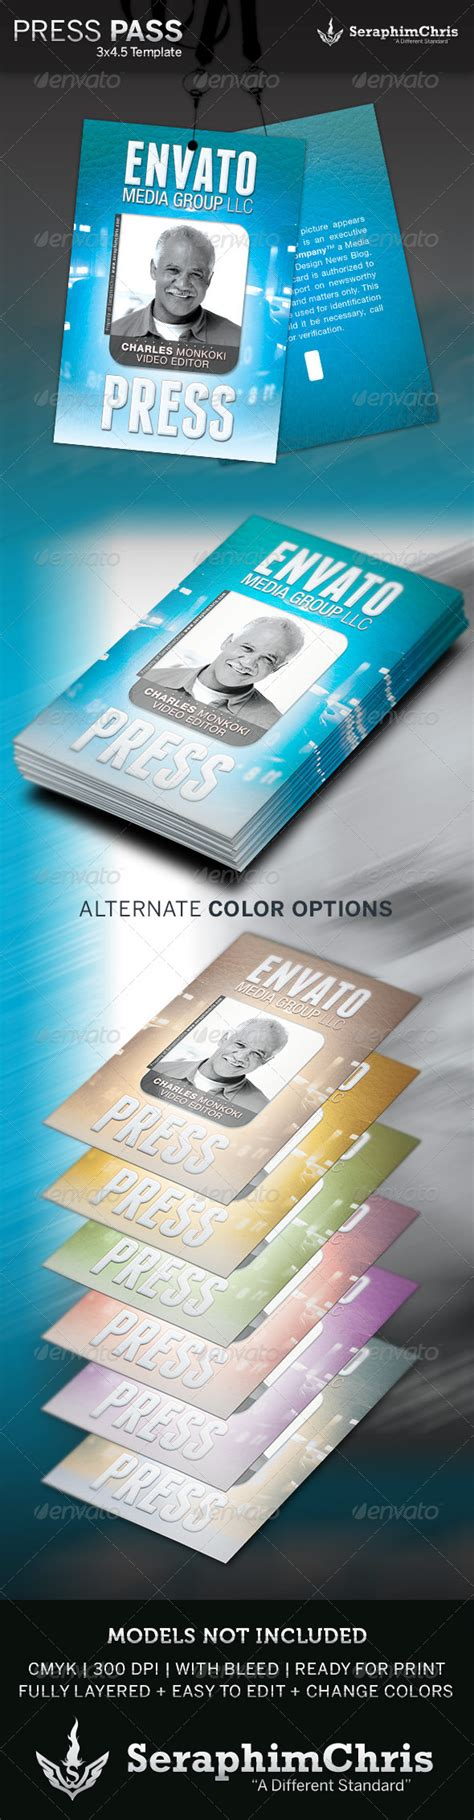 Press Pass Template Graphicriver Media Pass Template Photoshop